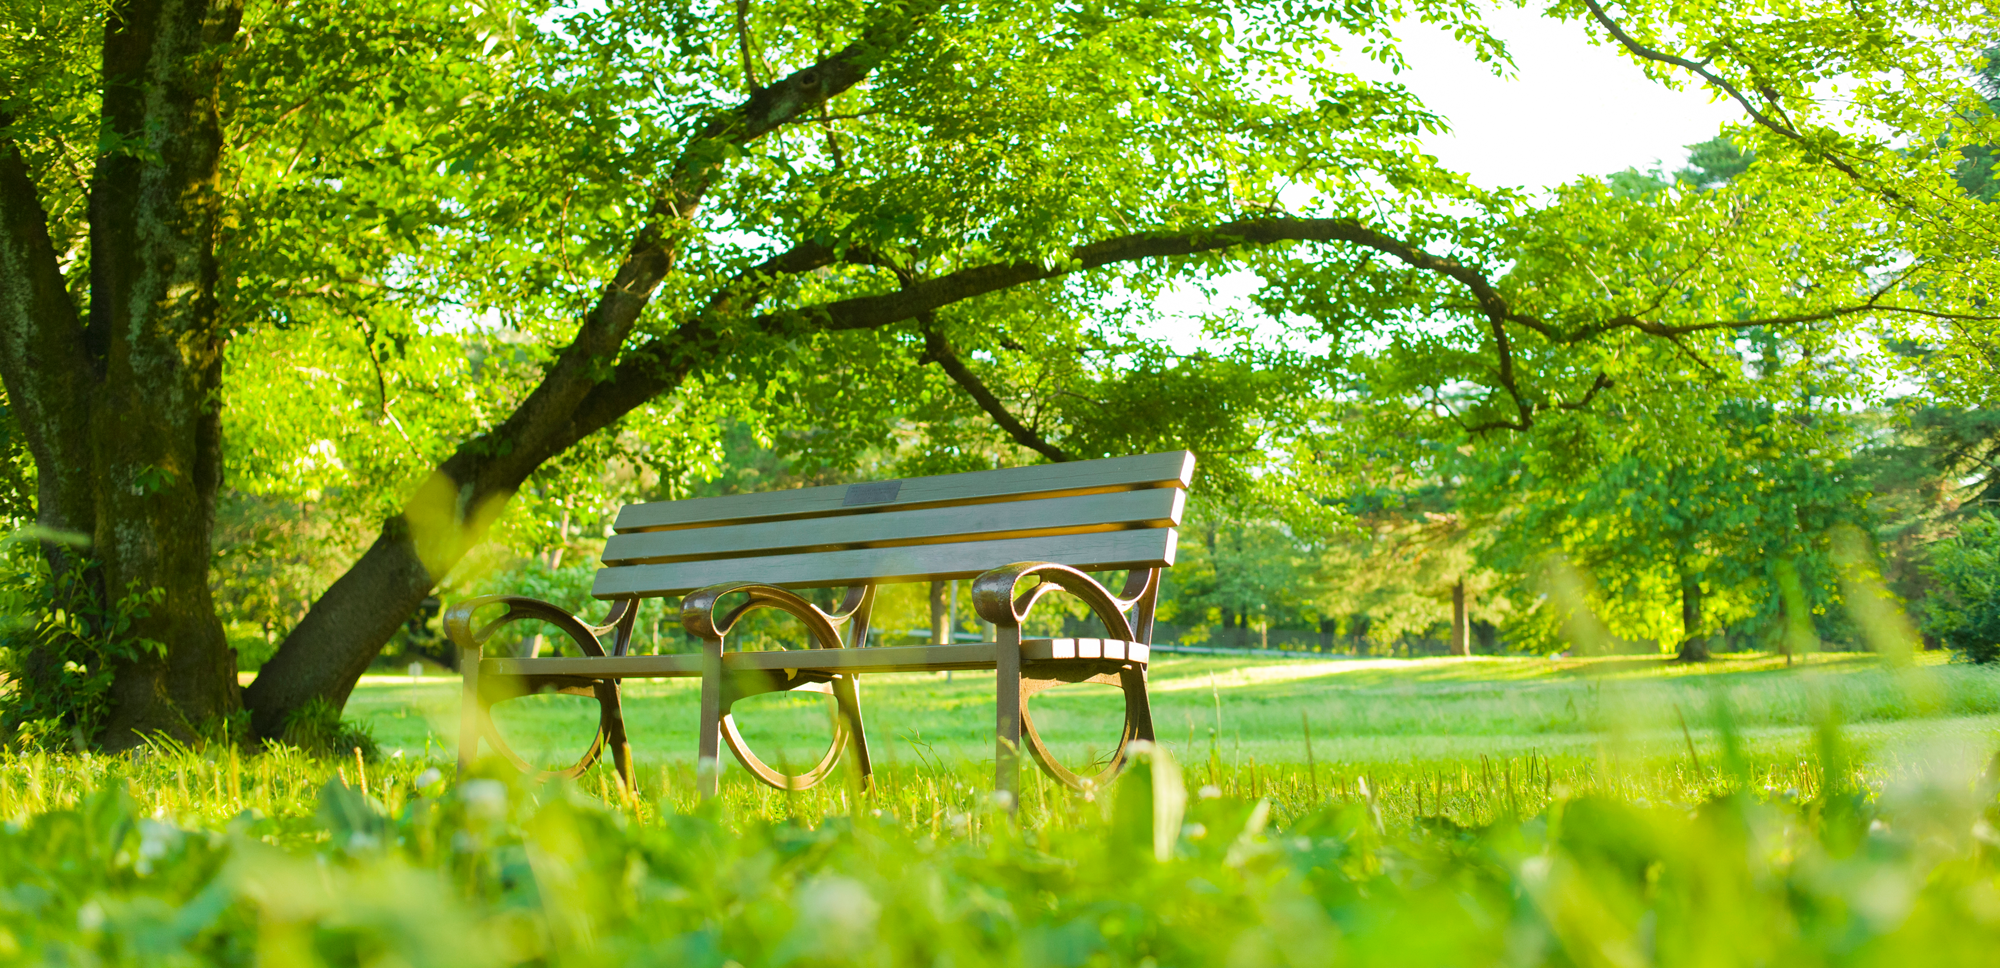 Bench surrounded by bright green grass and trees